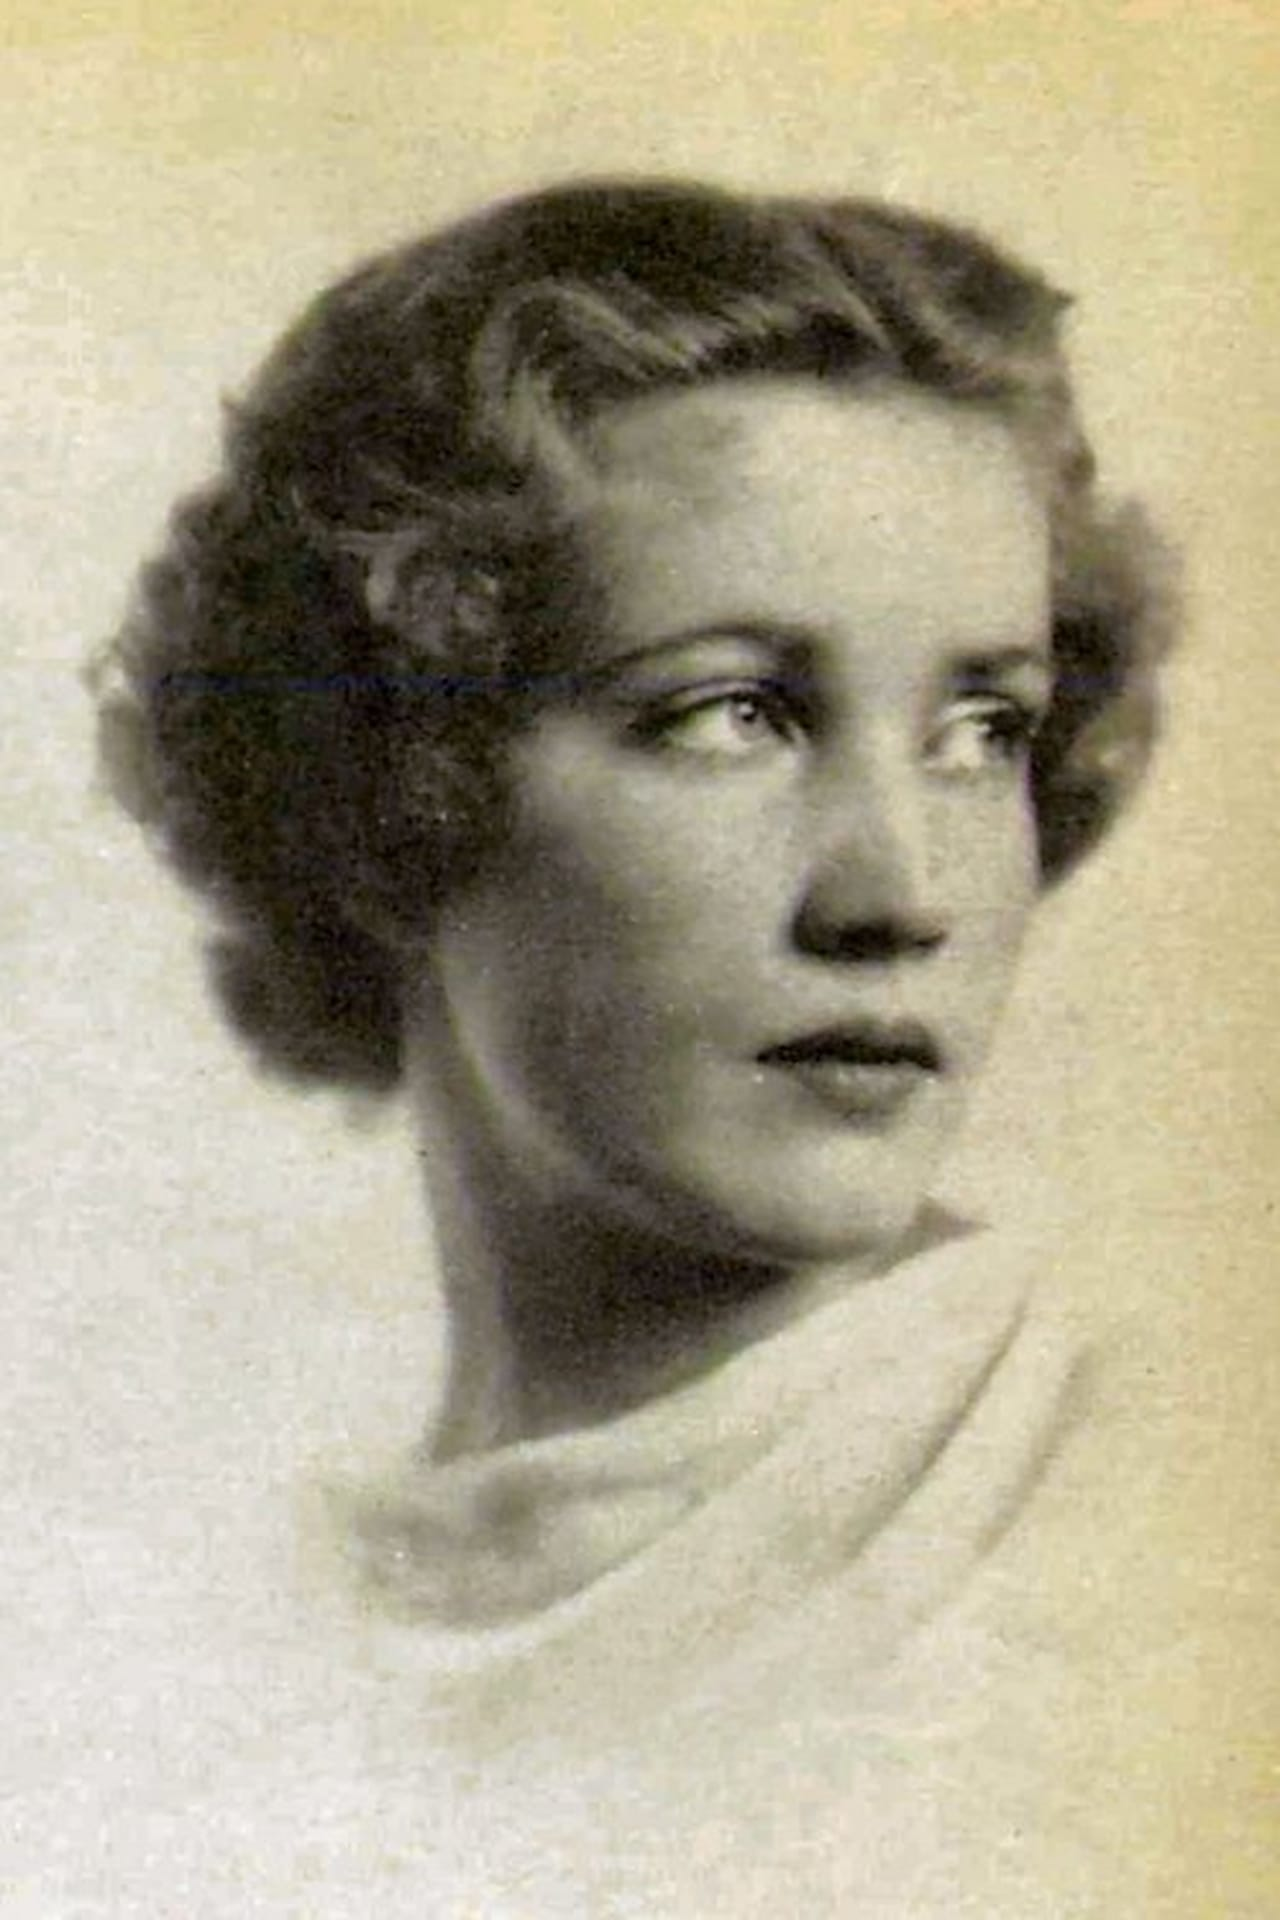 Edith Ewing Bouvier Beale